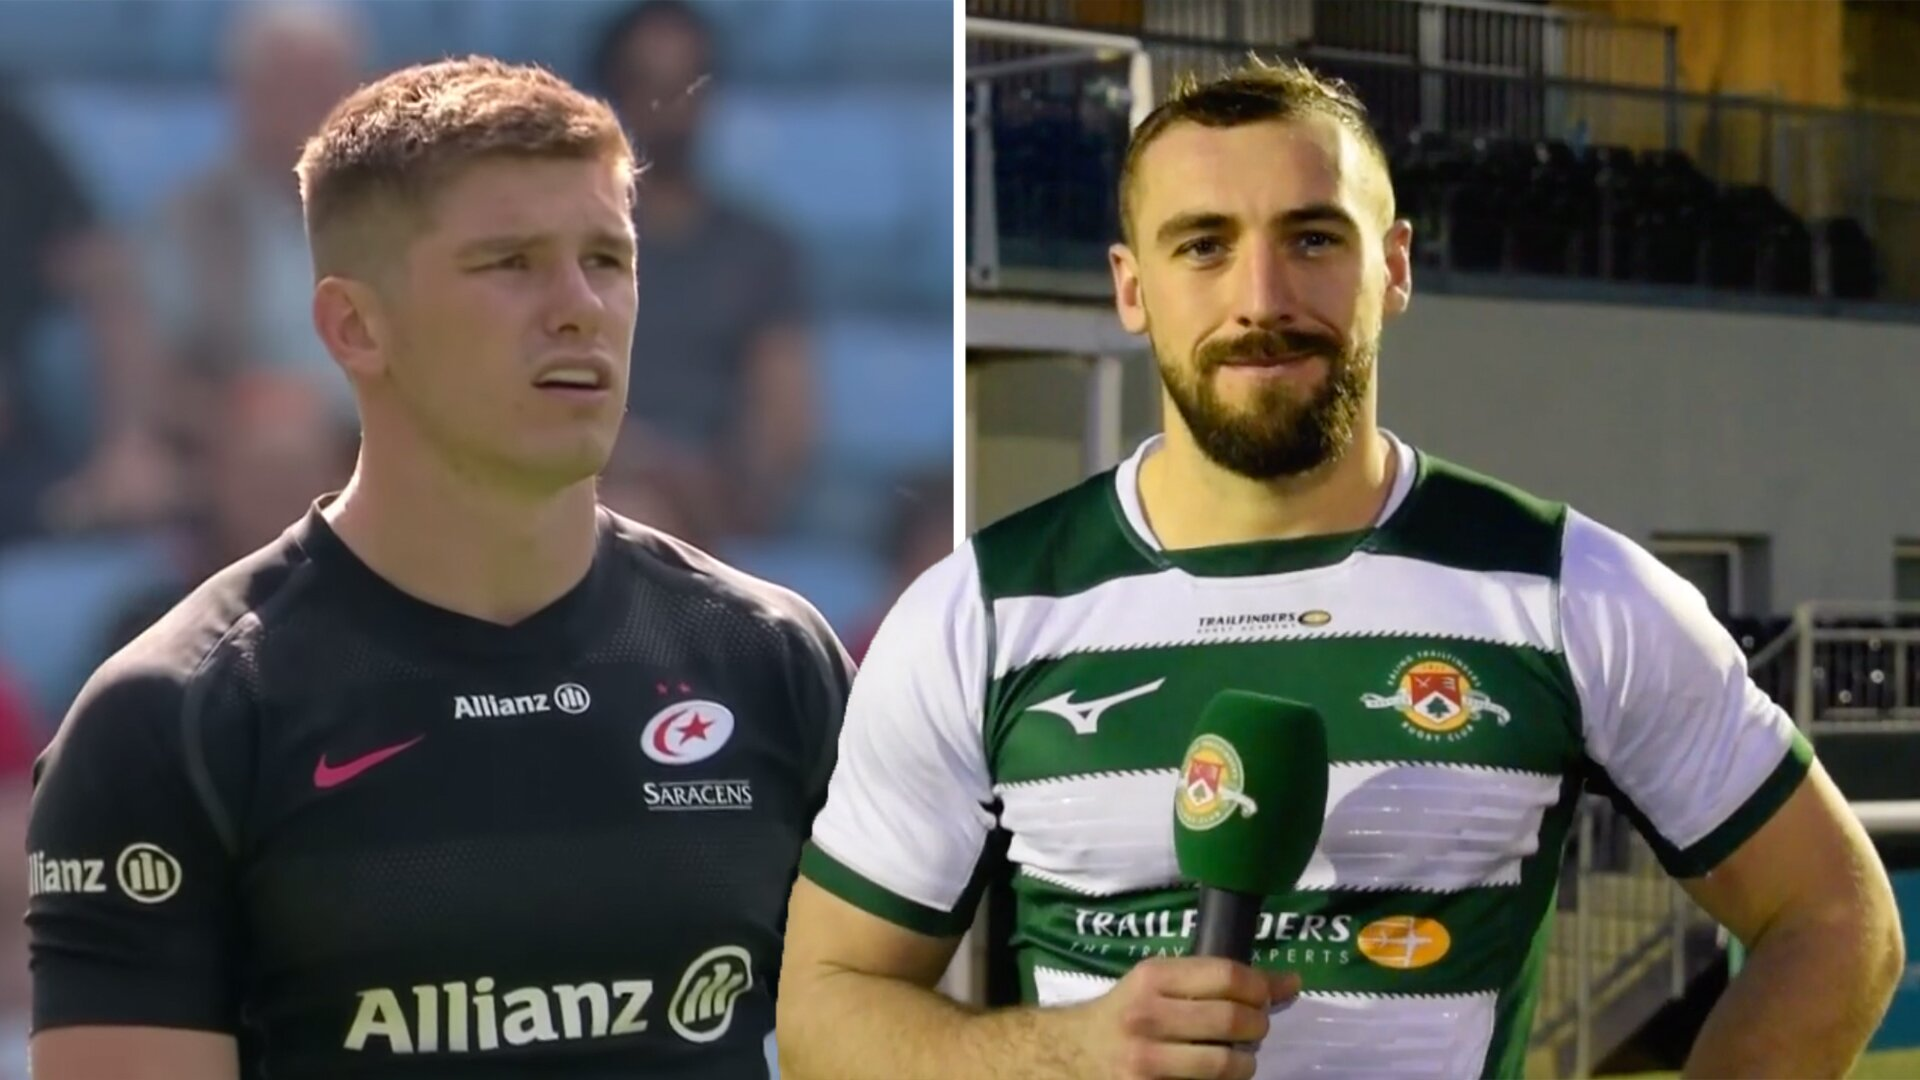 What we can expect from Saracens vs Ealing Trailfinders as only domestic England rugby game on weekend